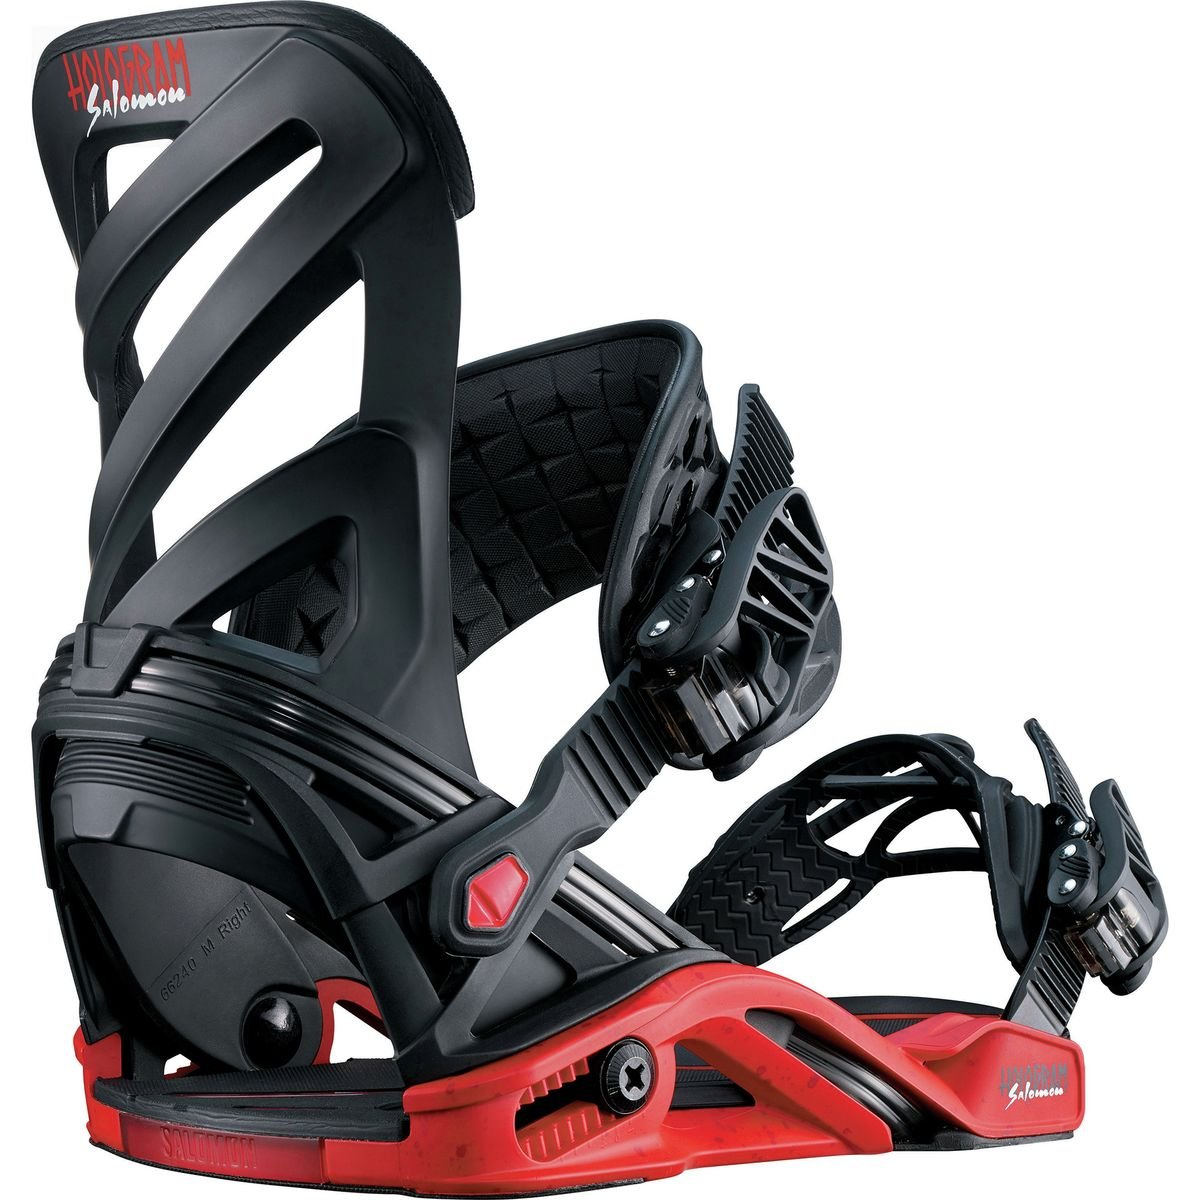 Salomon Snowboards Hologram Snowboard Binding Black/Red, M by Salomon